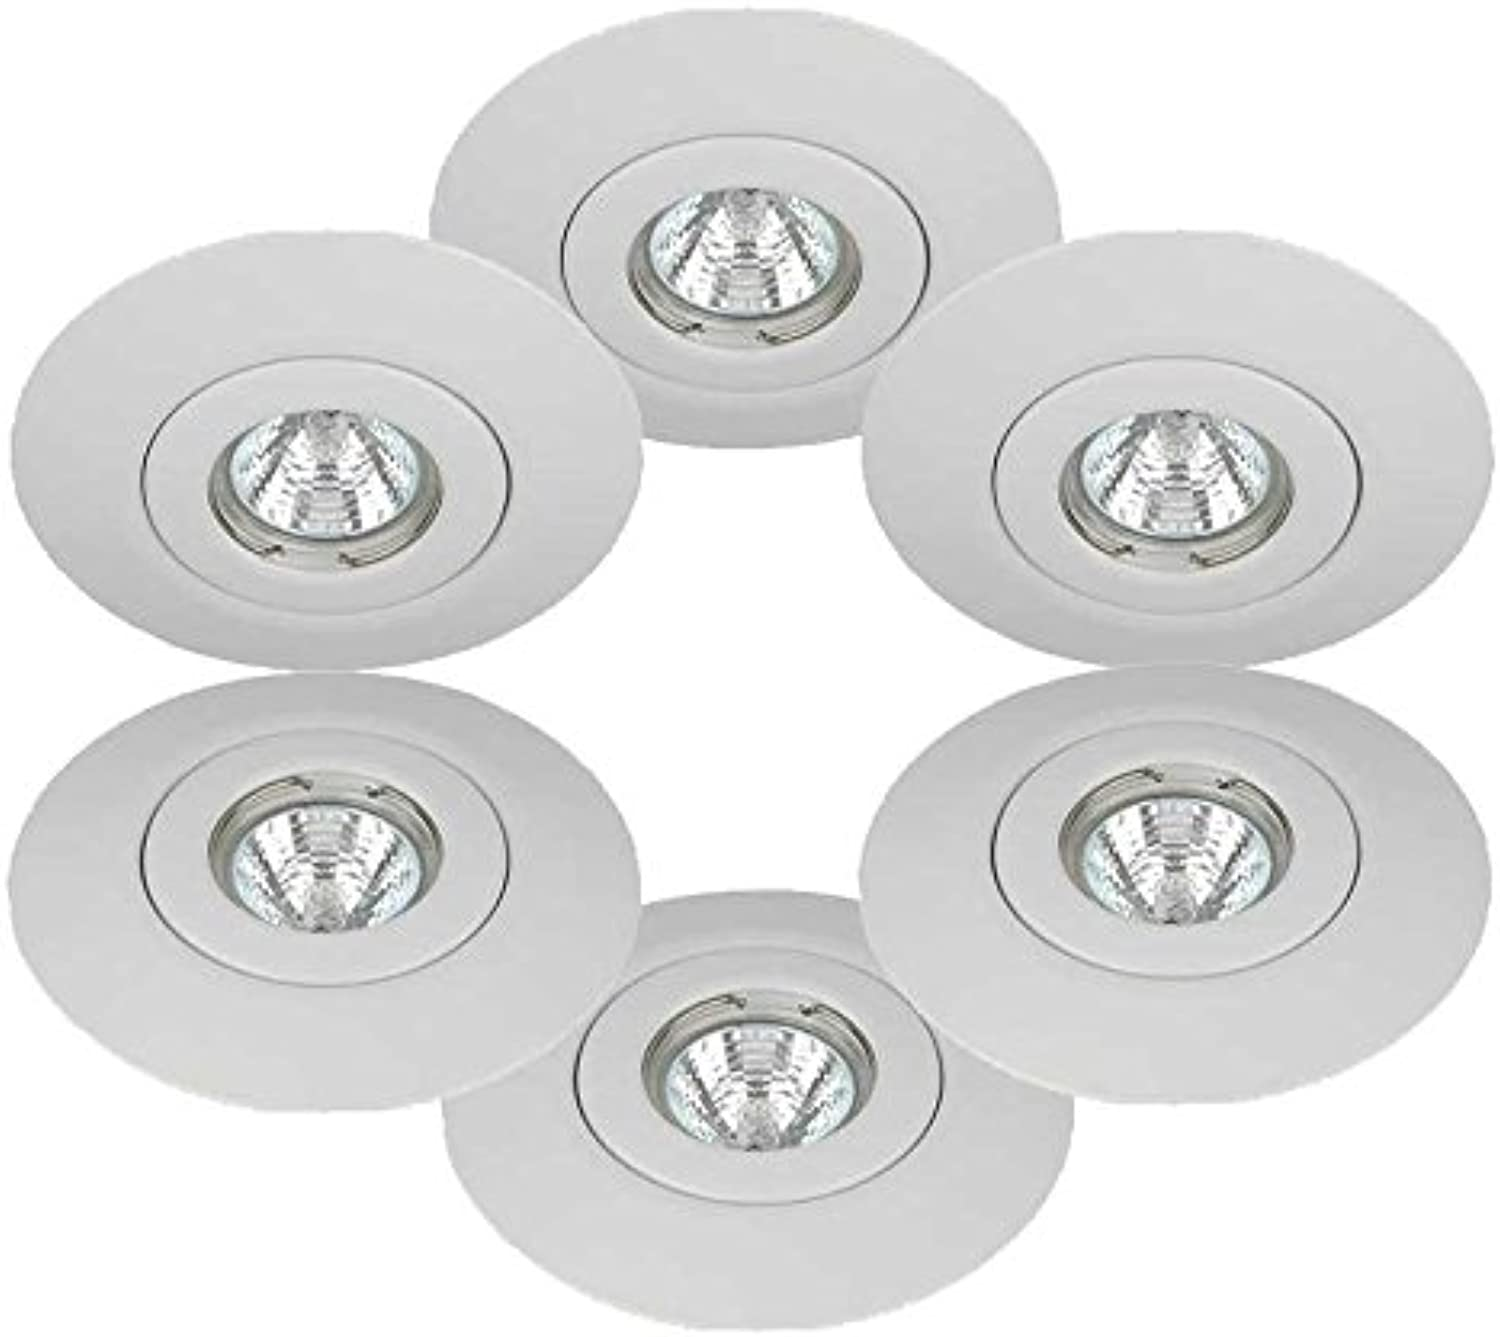 6 x Knightsbridge Downlight Spotlight Hole ConGrüner Conversion Kits GU10 & MR16 Weiß Finish by Knightsbridge